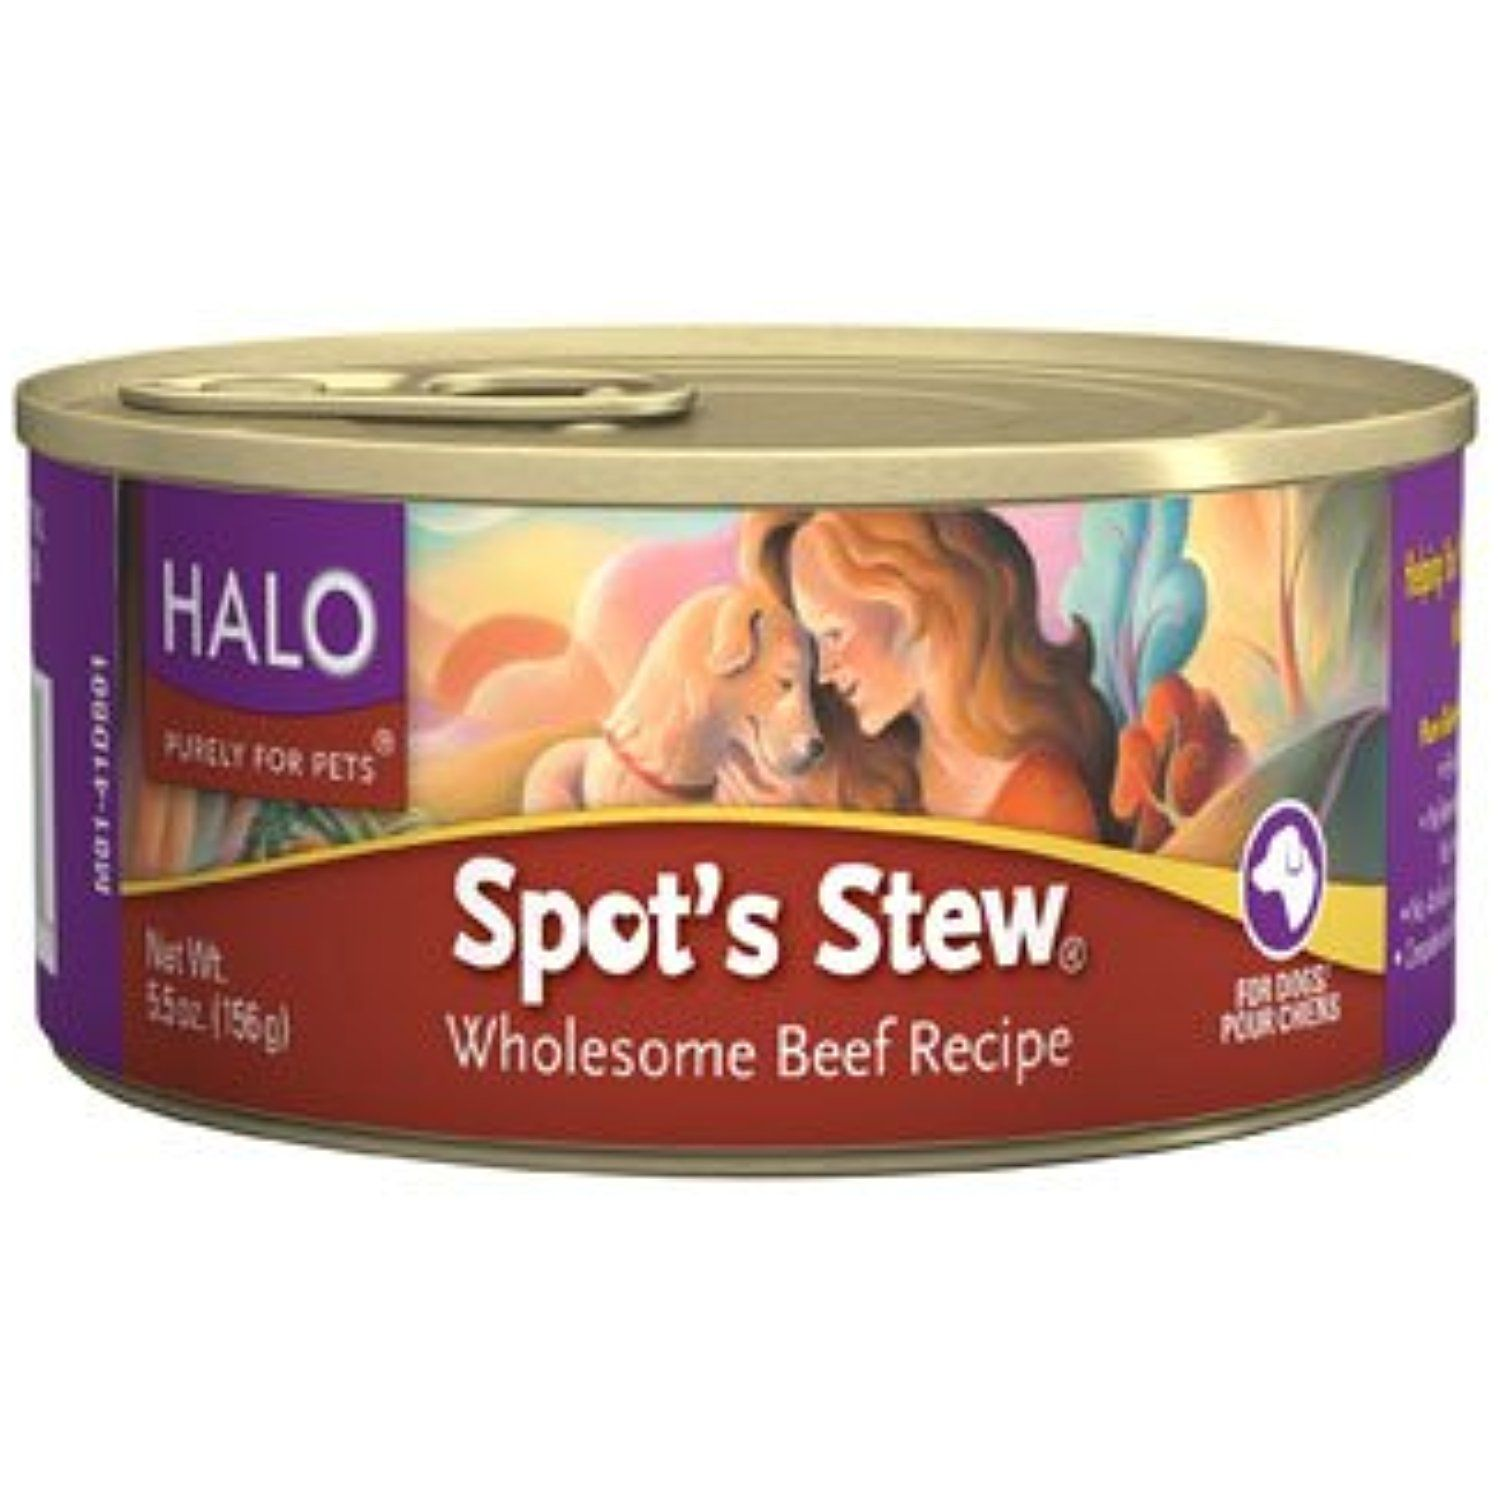 Halo Spot S Stew Wholesome Beef Recipe Canned Dog Food You Can